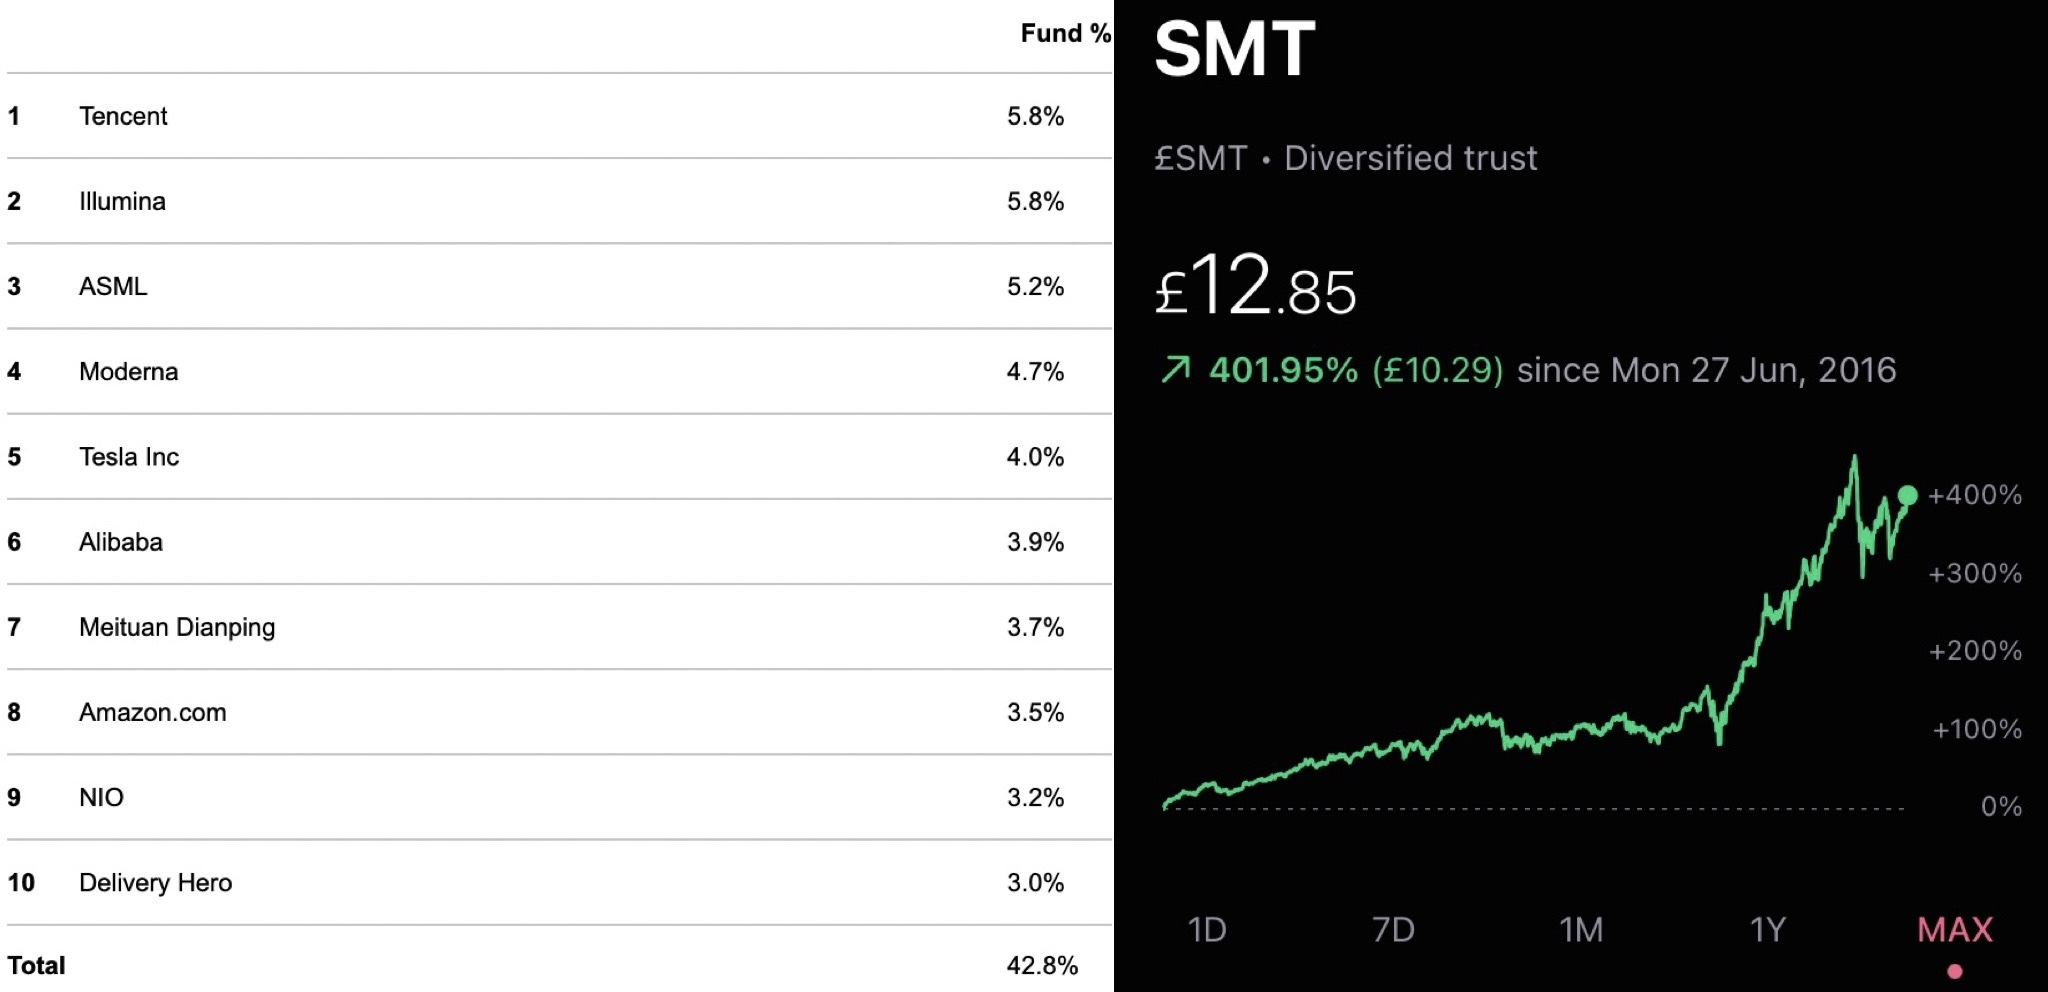 Scottish Mortgage Investment Trust top 10 holdings